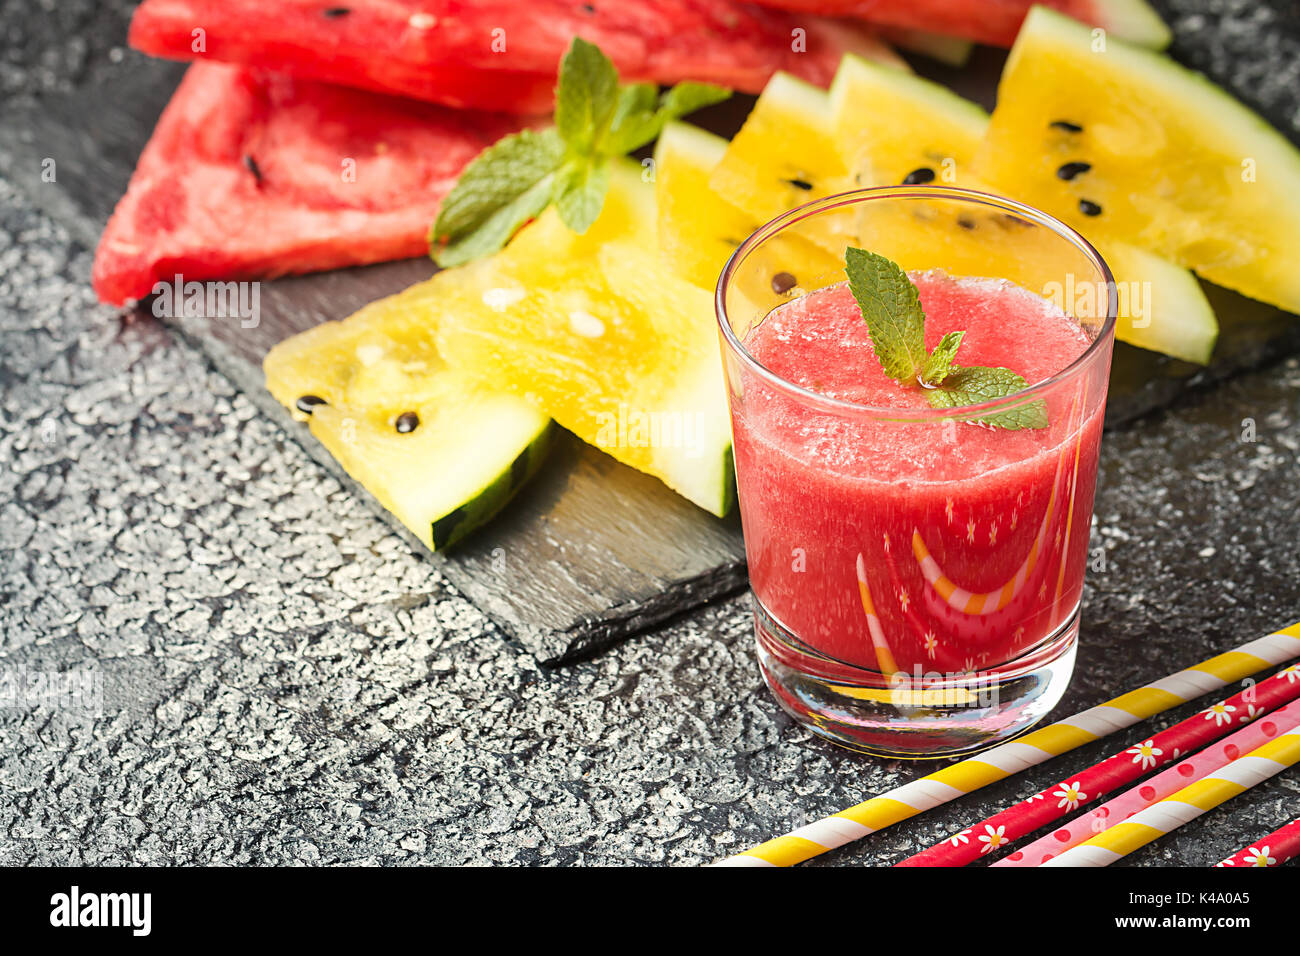 Glass of fresh red watermelon juice with slices of red and yellow watermelon. Healthy eco sweet food rich in vitamins. - Stock Image